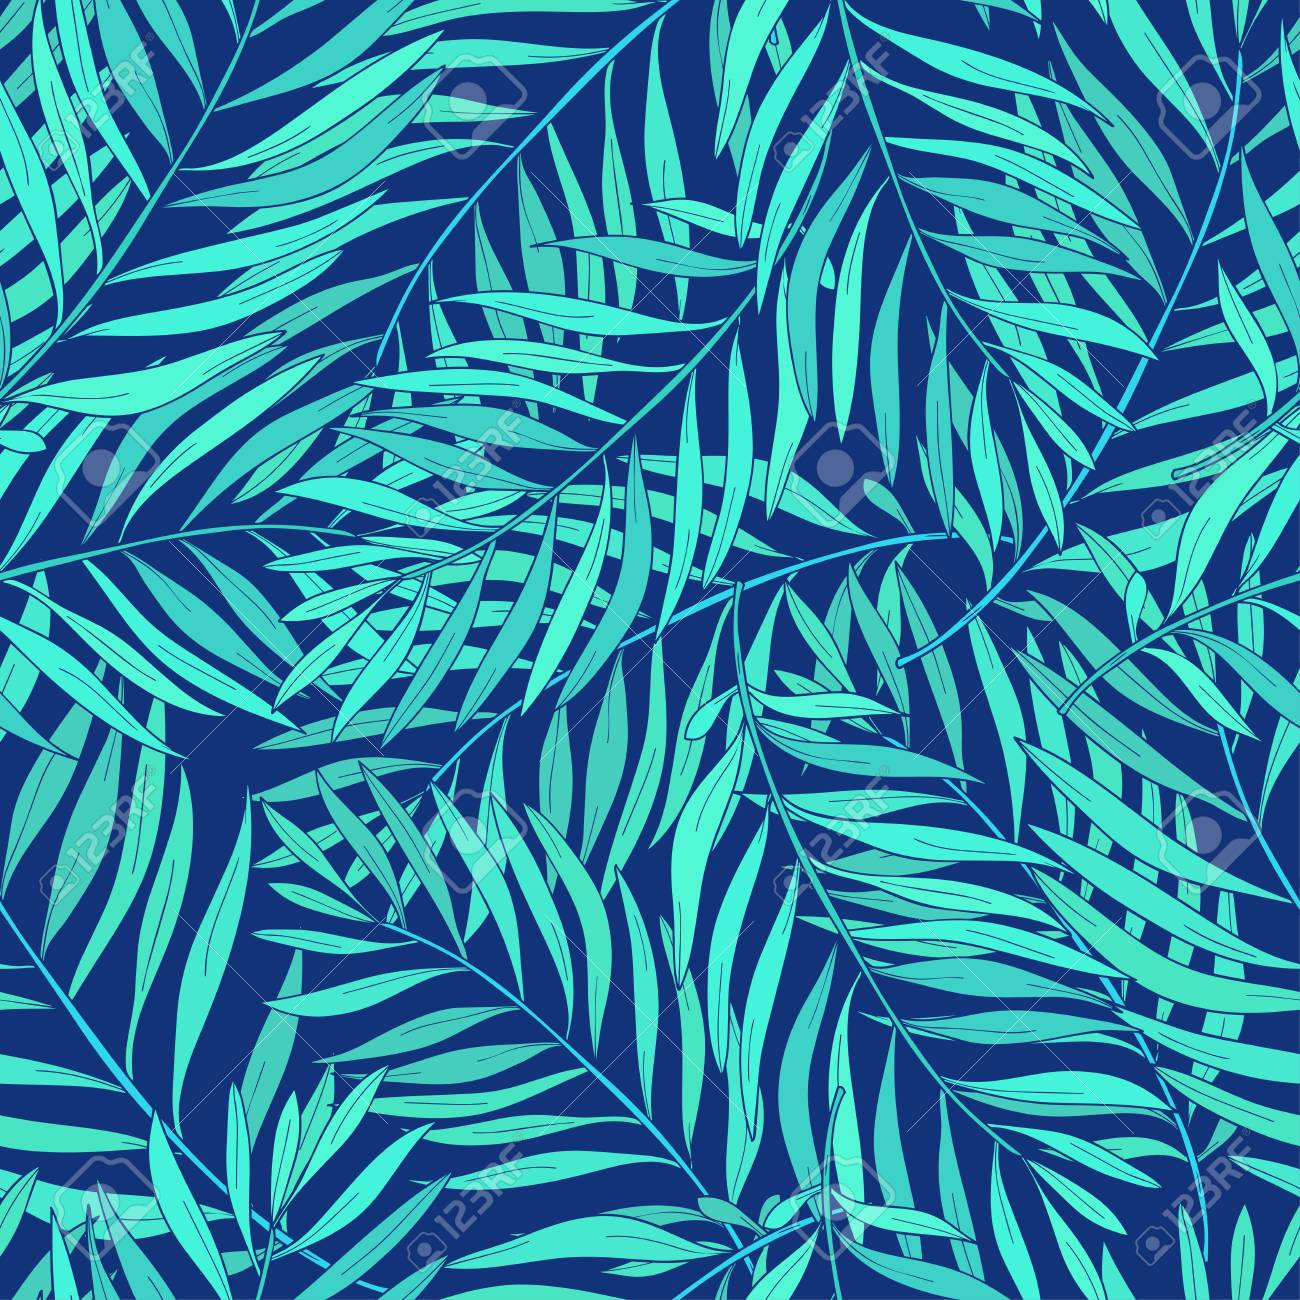 Natural Seamless Pattern With Green Tropical Palm Leaves On Blue Royalty Free Cliparts Vectors And Stock Illustration Image 90596290 Chinoiserie wallpaper bedroom wall covering modern vintage pink floral wallpaper blue tropical butterfly birds flower wall paper. natural seamless pattern with green tropical palm leaves on blue